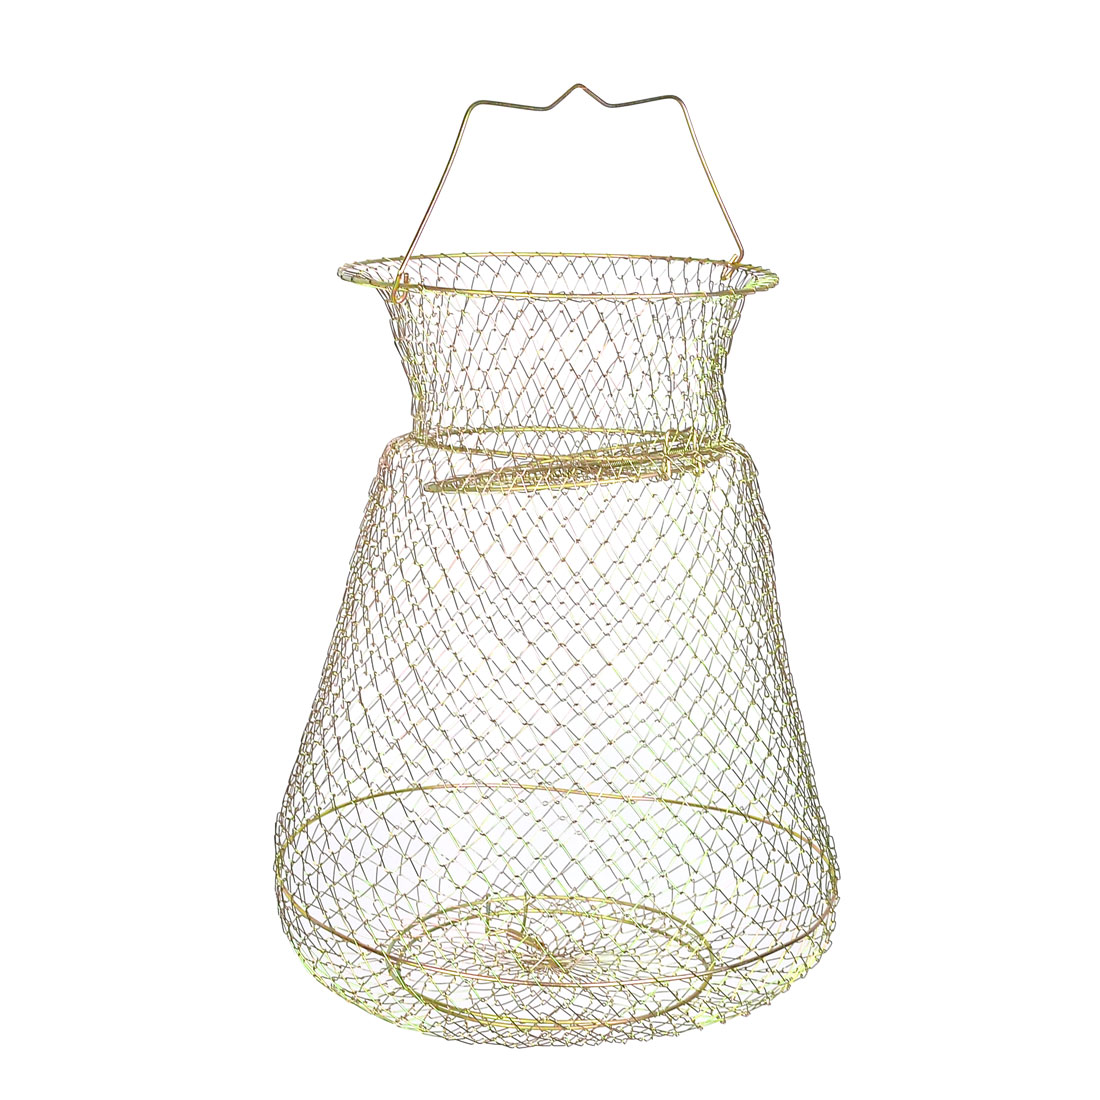 Gold Tone Foldable Spring Design 3 Layers Metal Fishing Keep Net Cage 15.7""